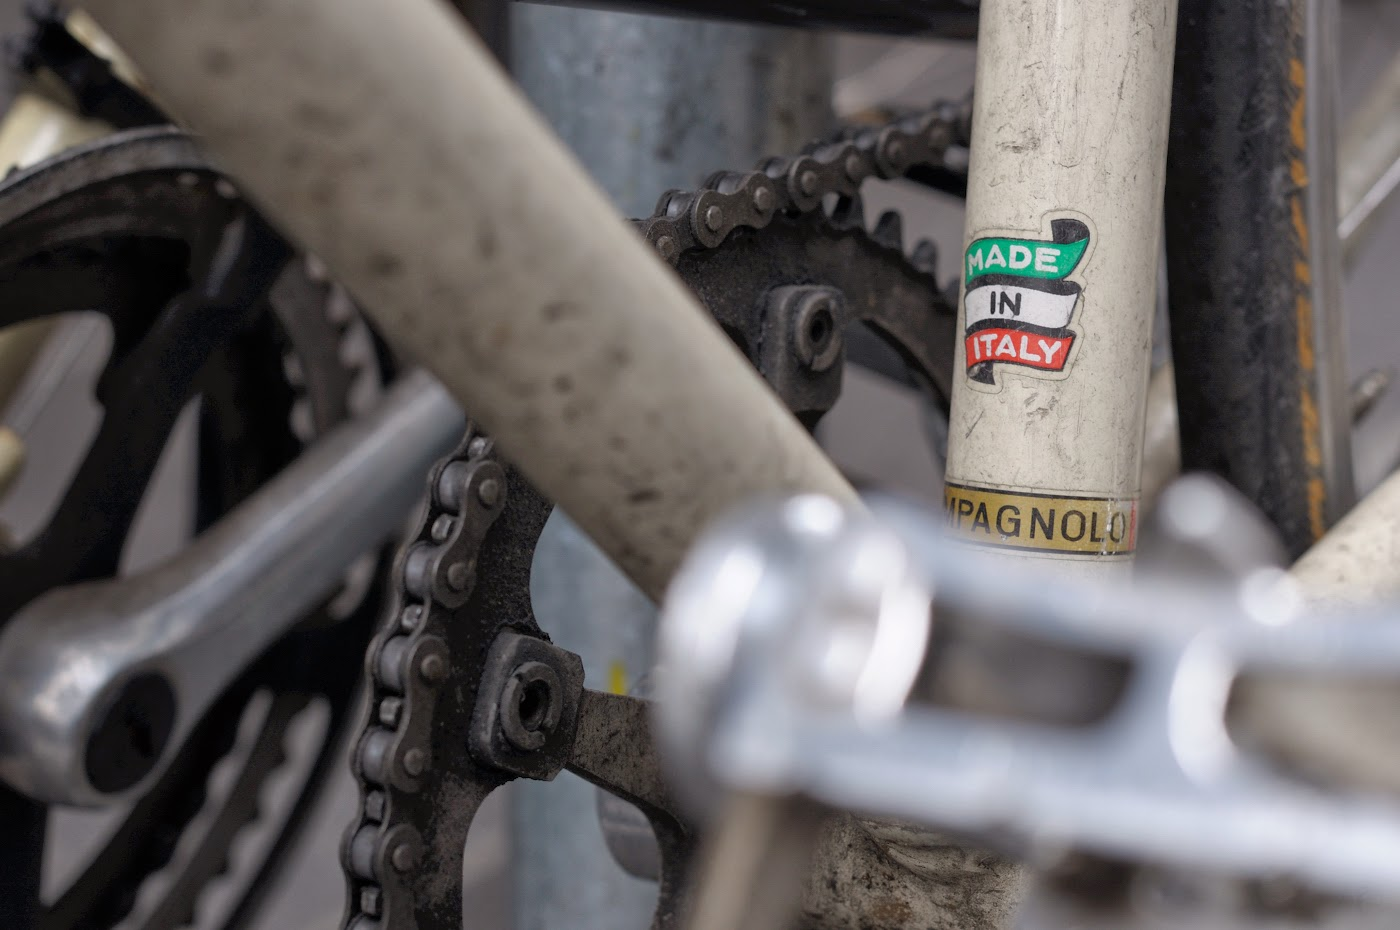 Tim macauley, the biketorialist, biketorialist, Gianni motta, conversion, single speed, custom, Melbourne, Australia, the light monkey collective, frame, Columbus, campagnolo, decals, sticker, logo, made in italy